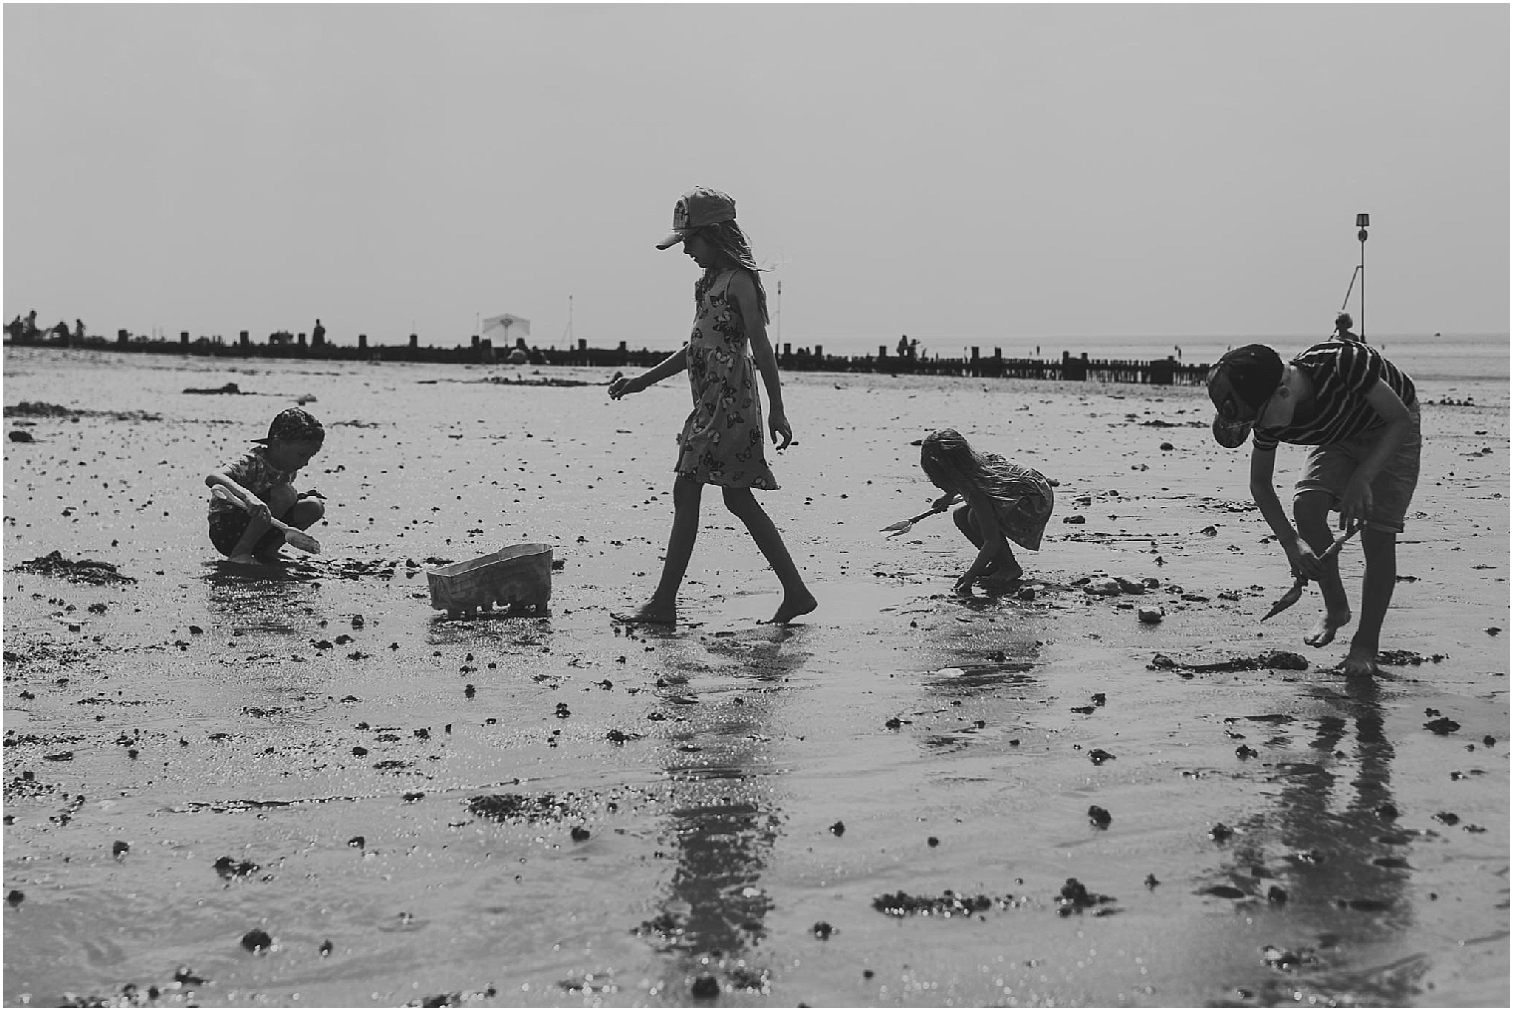 black and white image of children on a beach